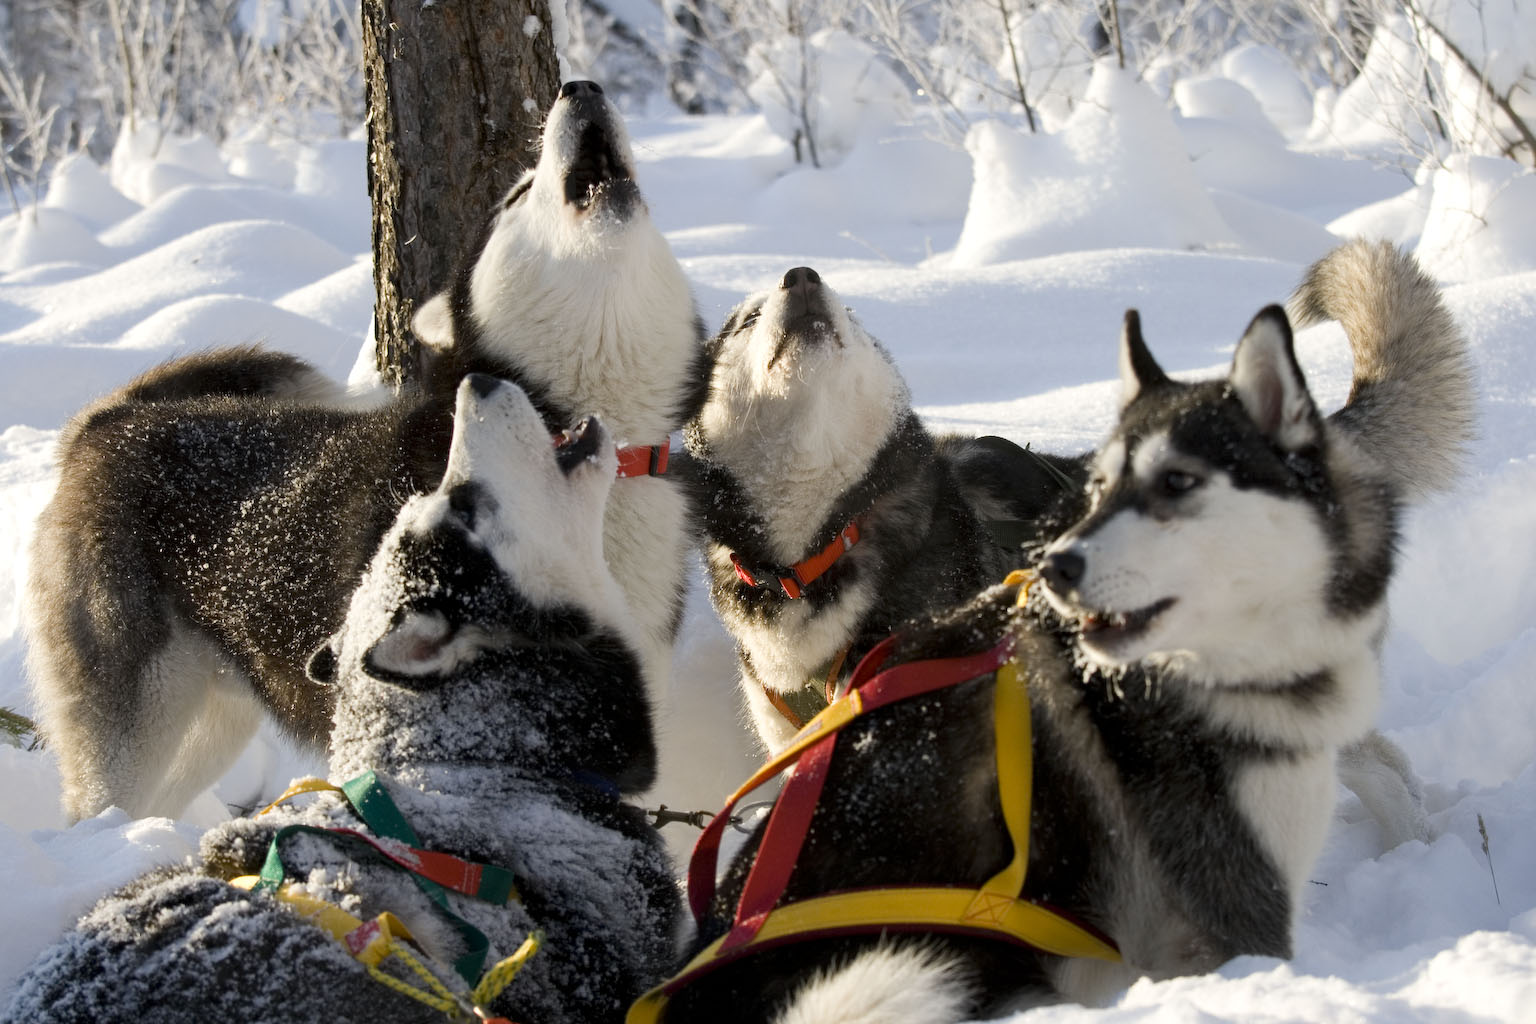 Fun-loving & friendly huskies